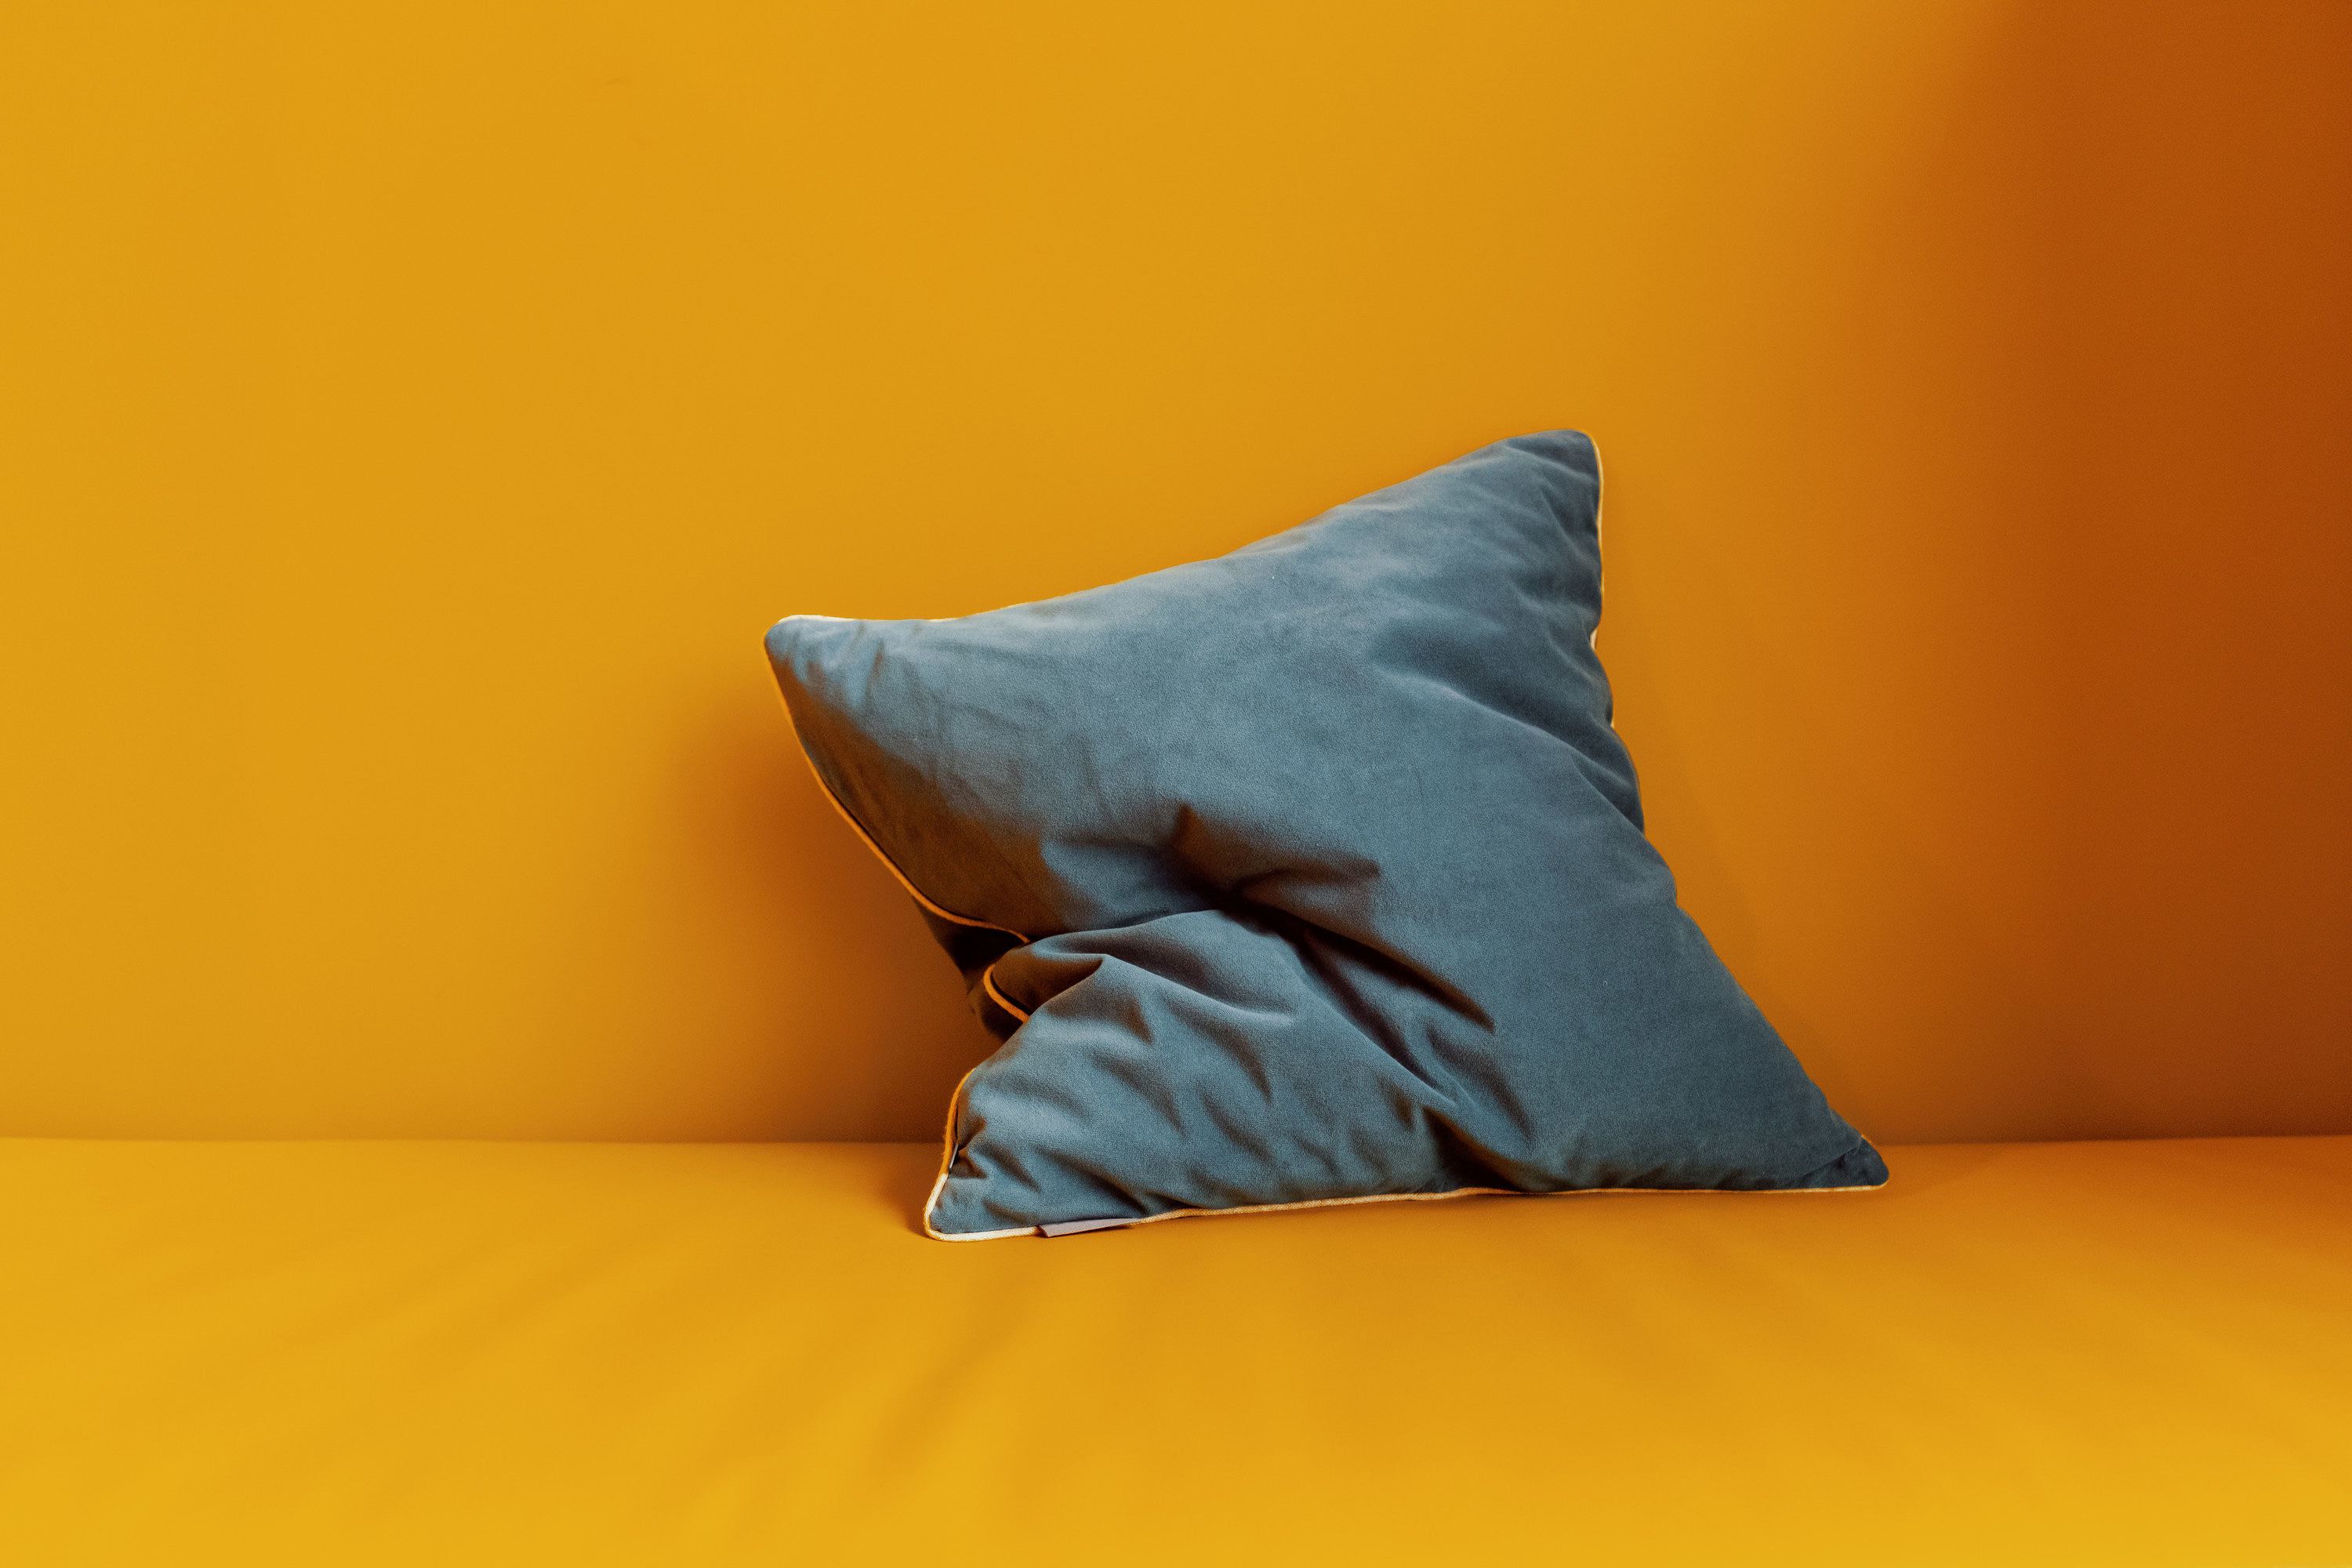 An image of a pillow on an orange background